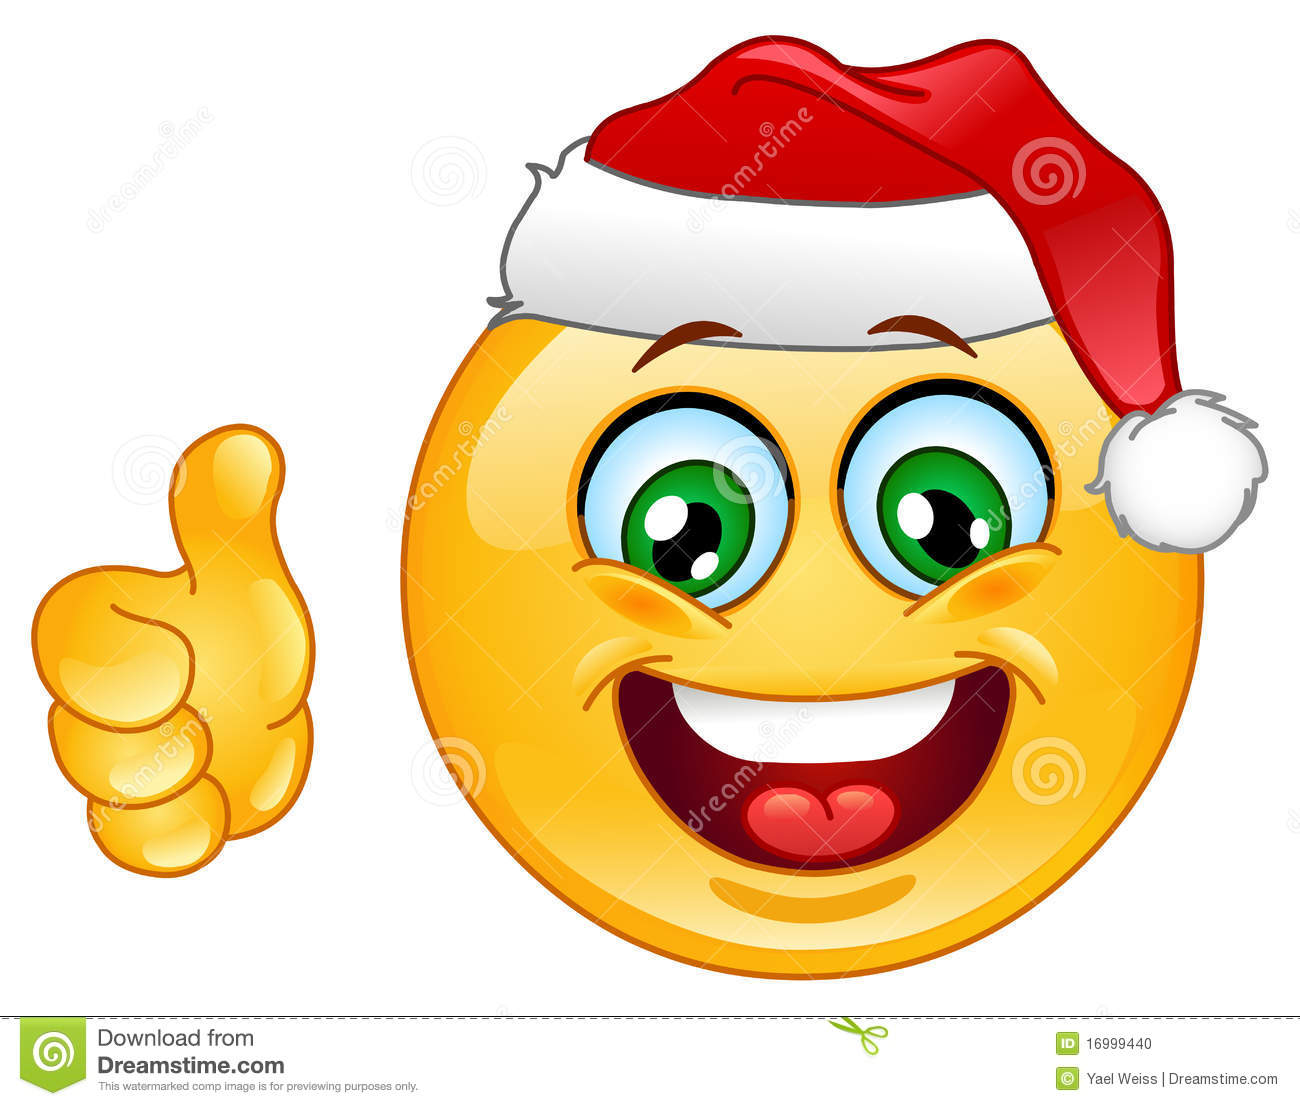 Christmas Emoticon Stock Photo - Image: 16999440